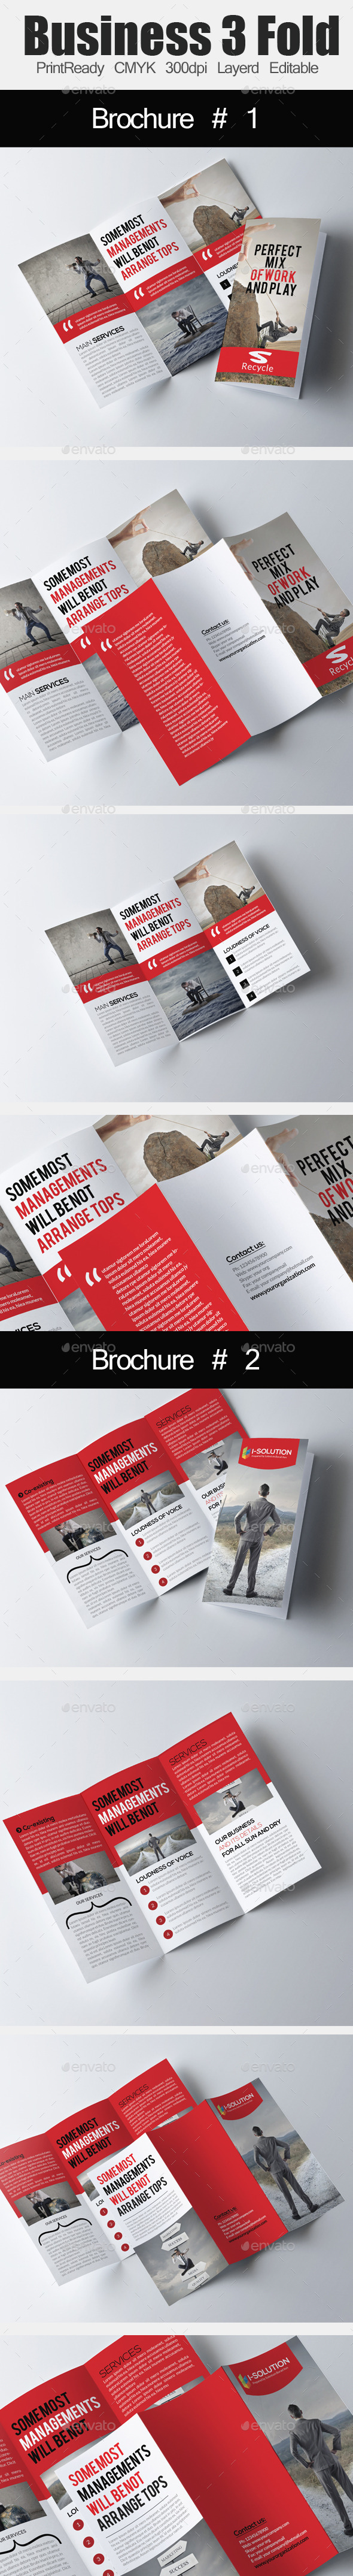 Corporate Tri Fold Brochure Bundle - Corporate Brochures